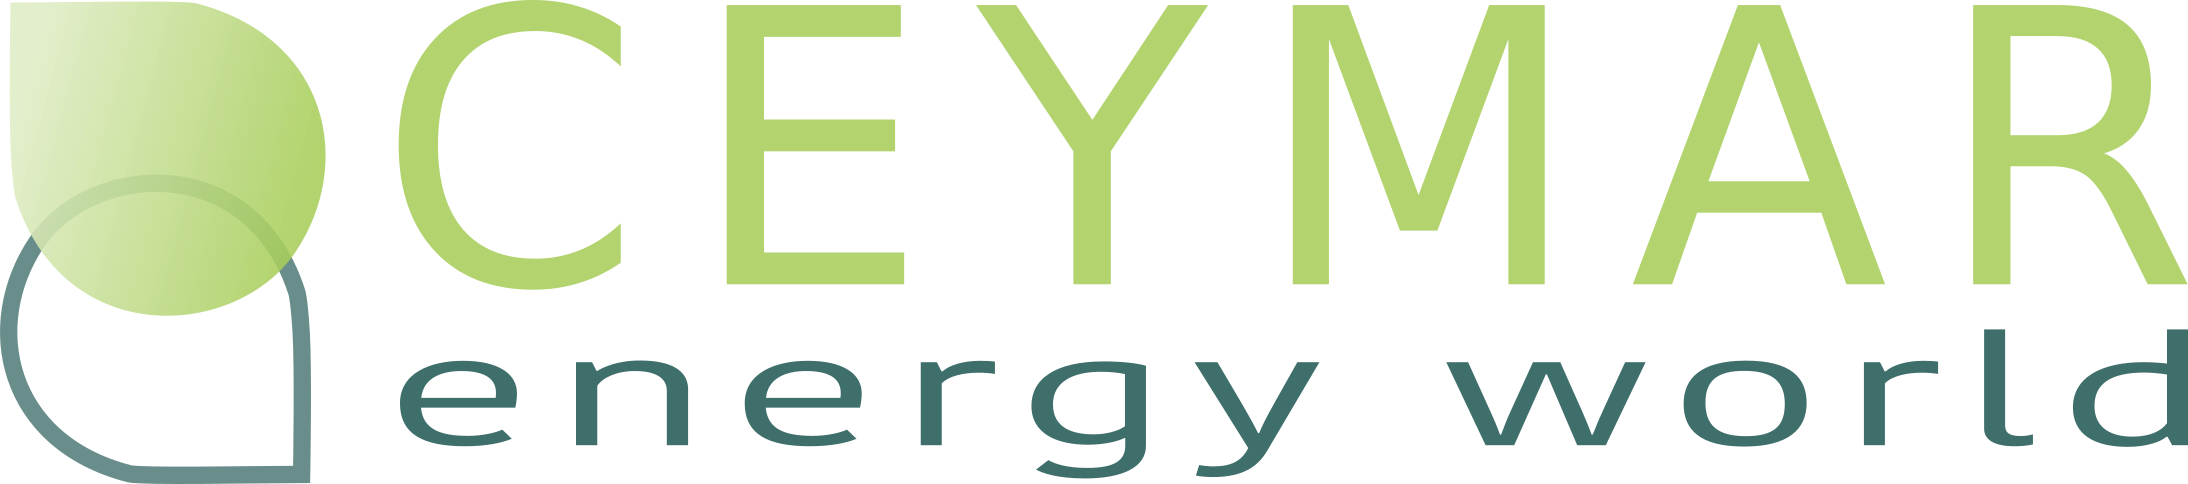 Ceymar Energy world